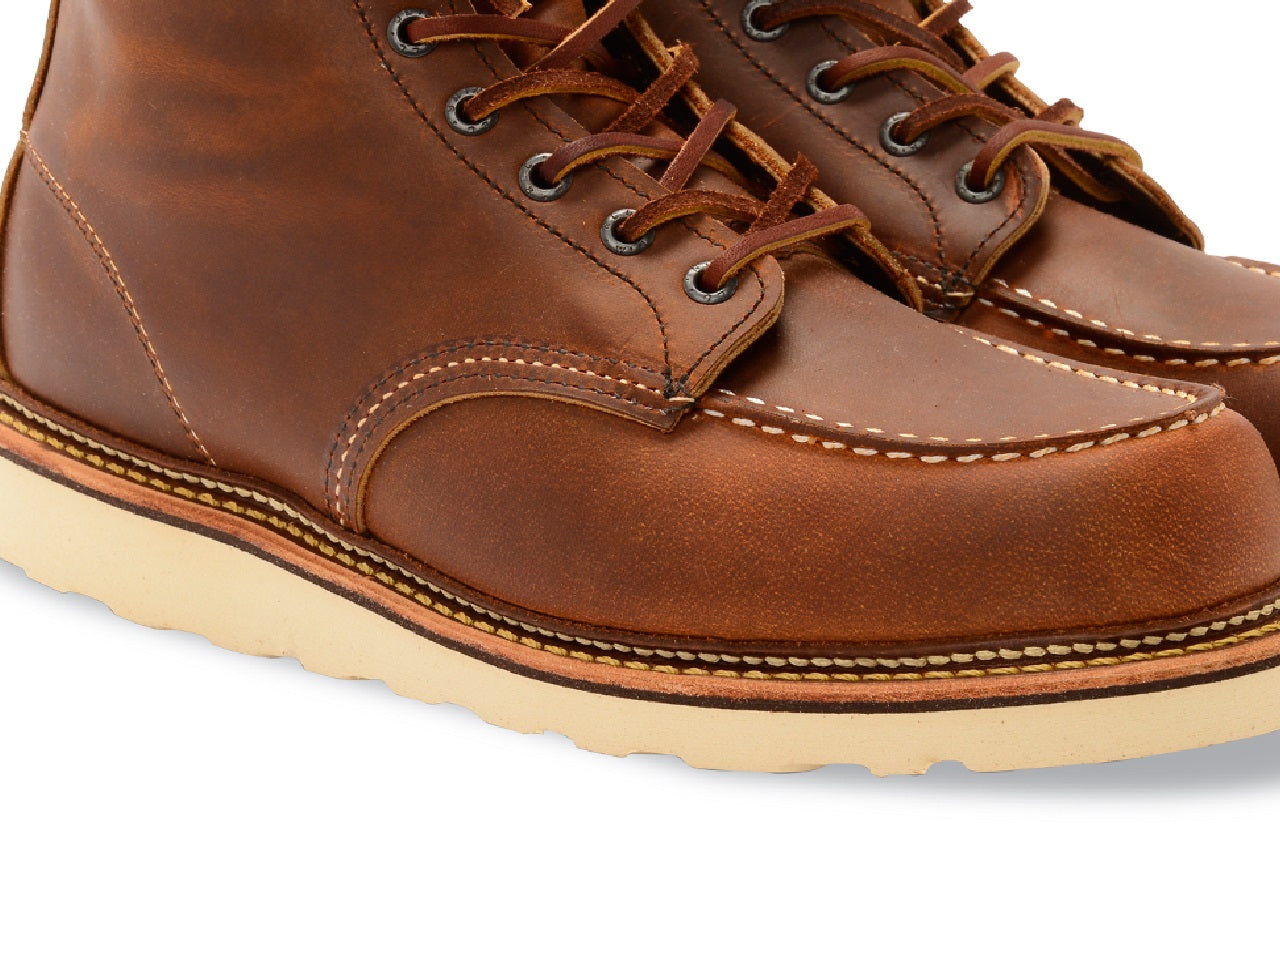 Red Wing Heritage Classic Moc Toe Boots